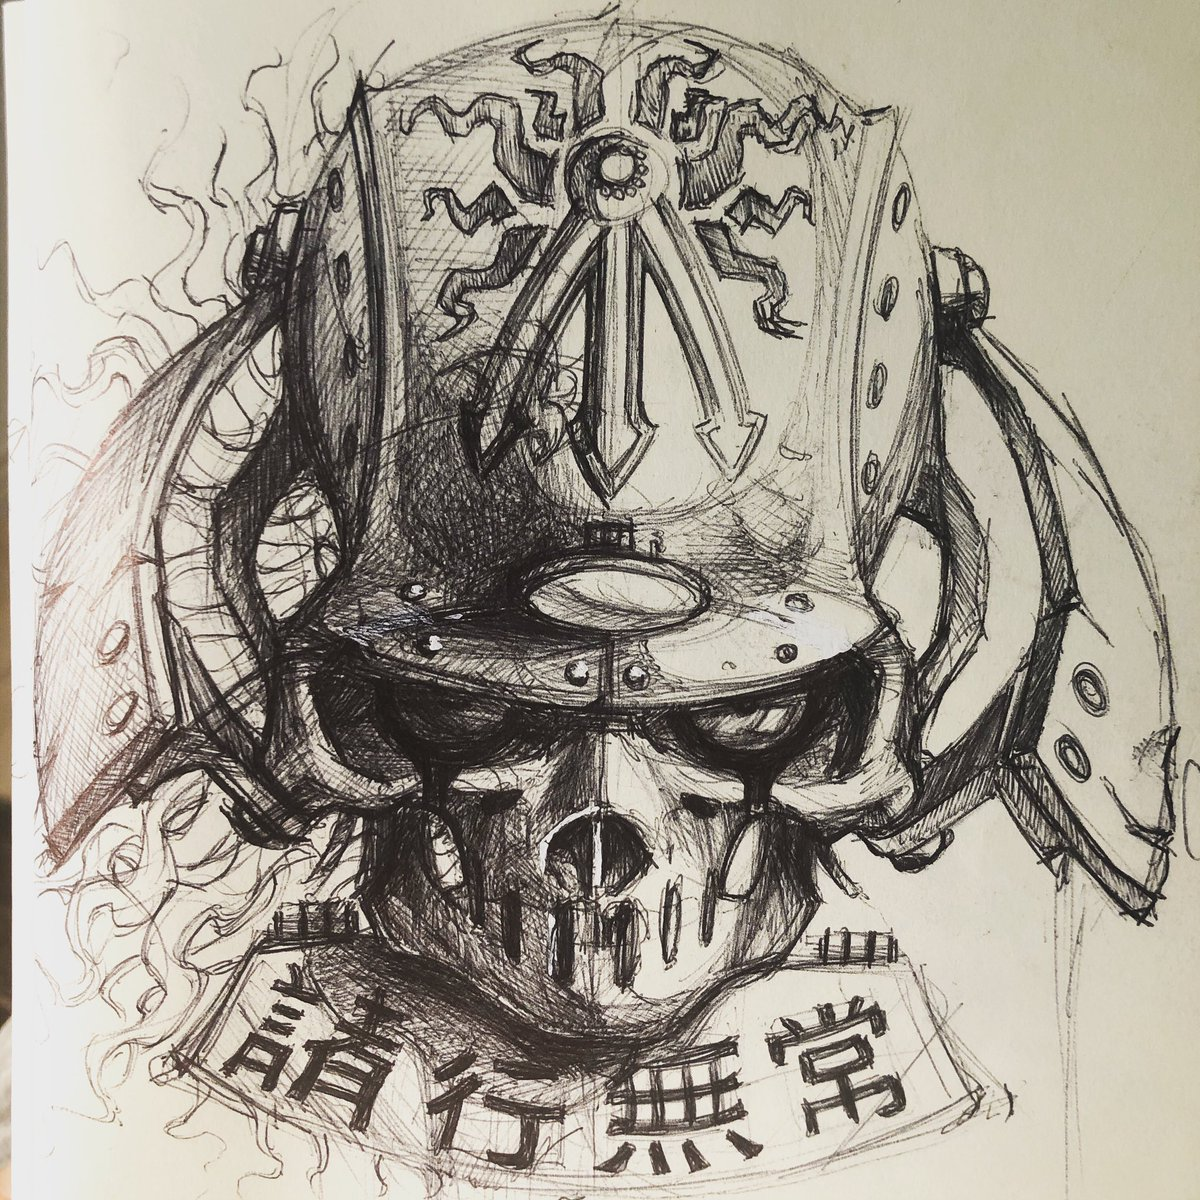 """Everything is Transient""  #bjj #bjjlifestyle #samurai #skull #skeleton #bushido #brazilianjiujitsu #grappling #jiujitsu #training #mma #martialarts #bjjmotivation #sketchbook #art"